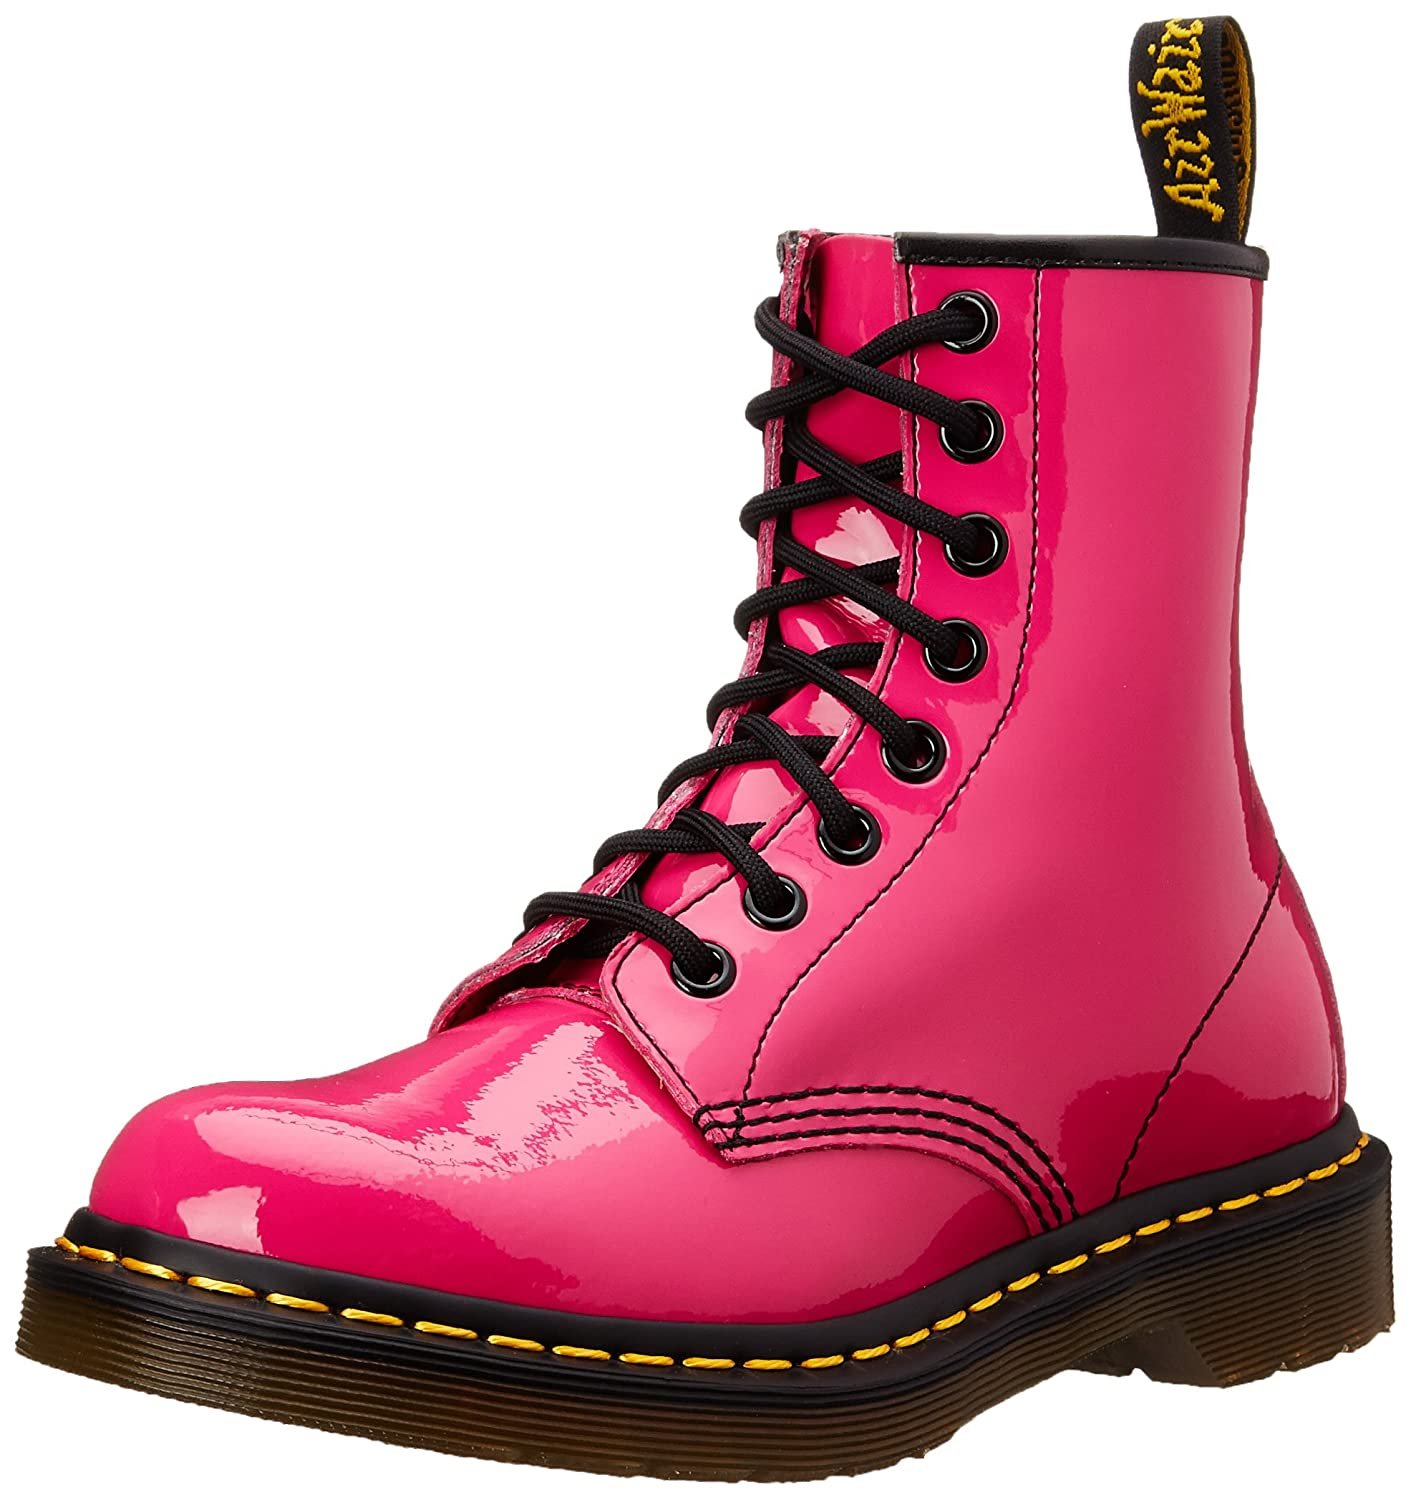 Dr. Martens Bottines 1460, Bottines Femme Pink) Rose 19699 (Hot Pink) 3e0bf94 - automatisms.space